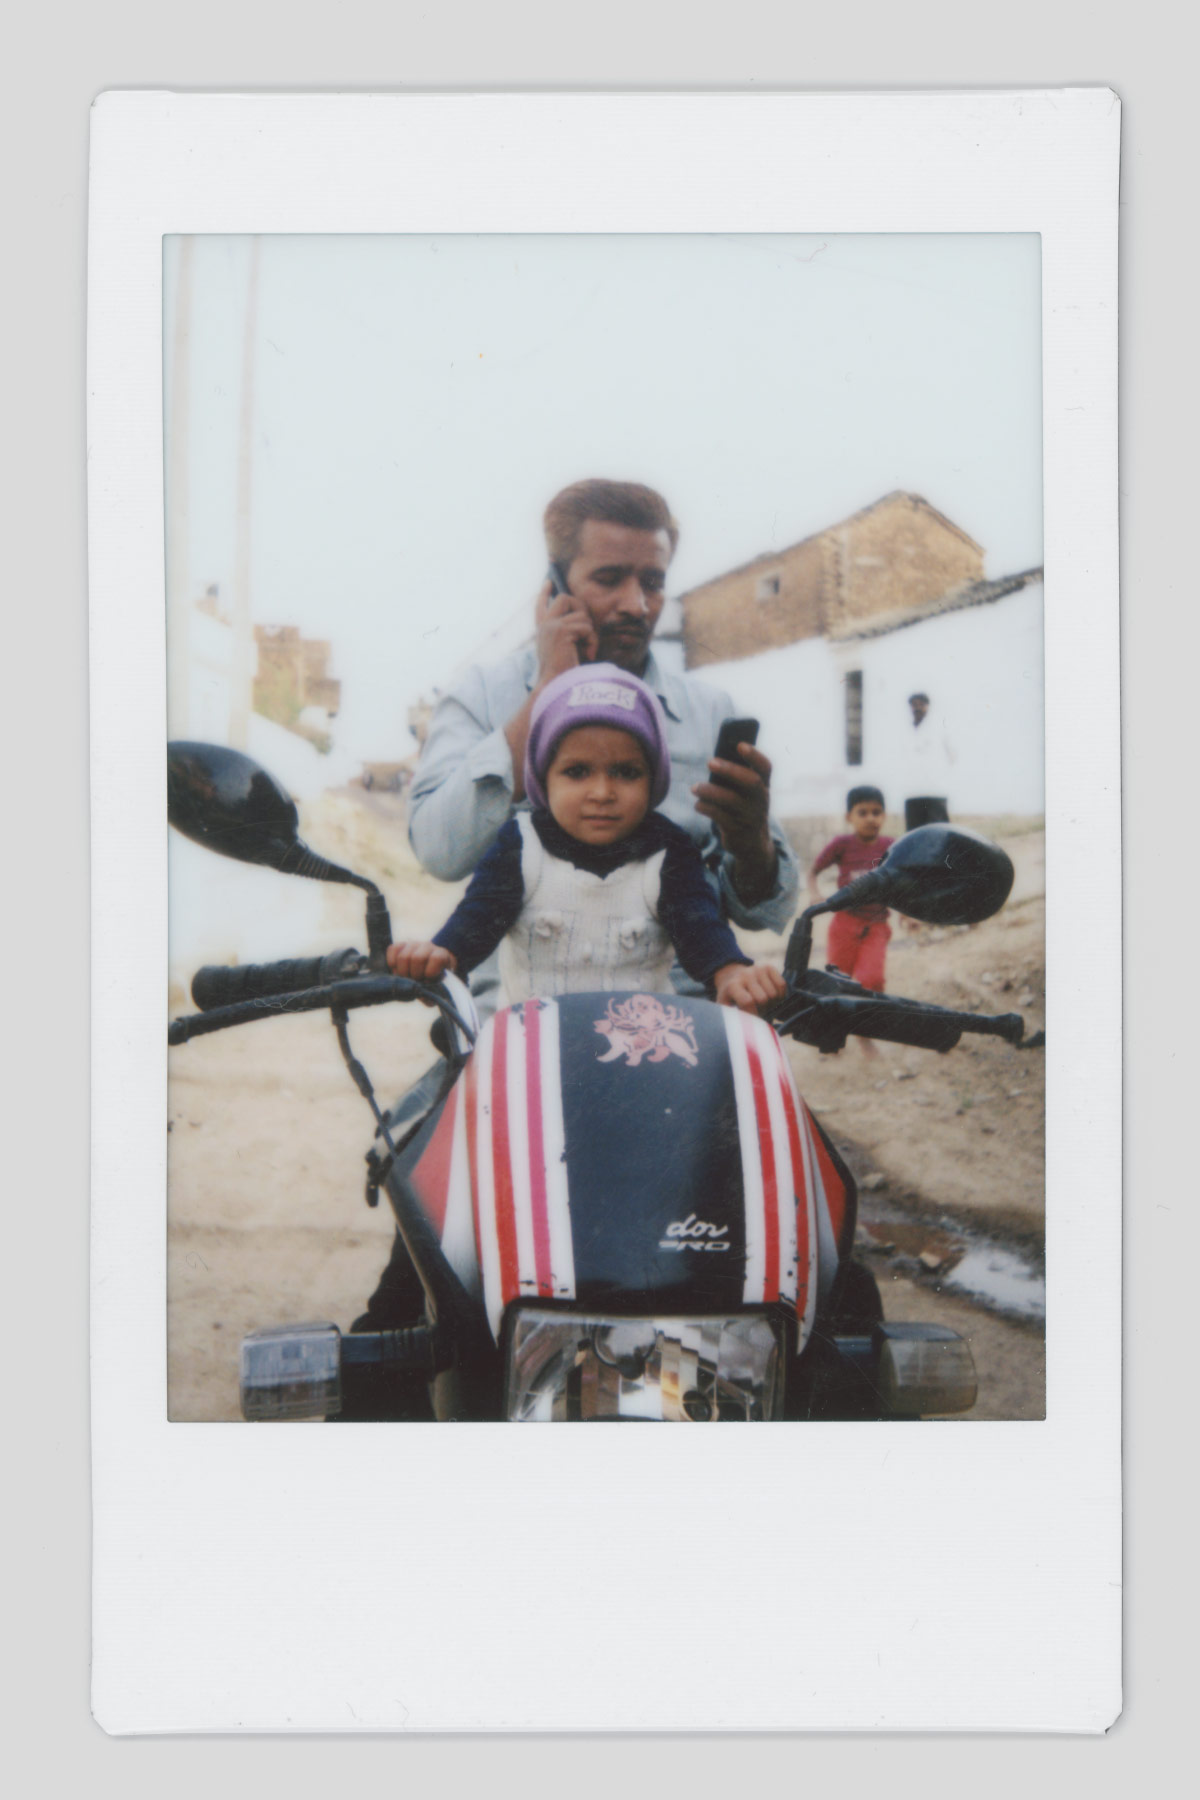 giulio_favotto_india_details_polaroid_instax_08